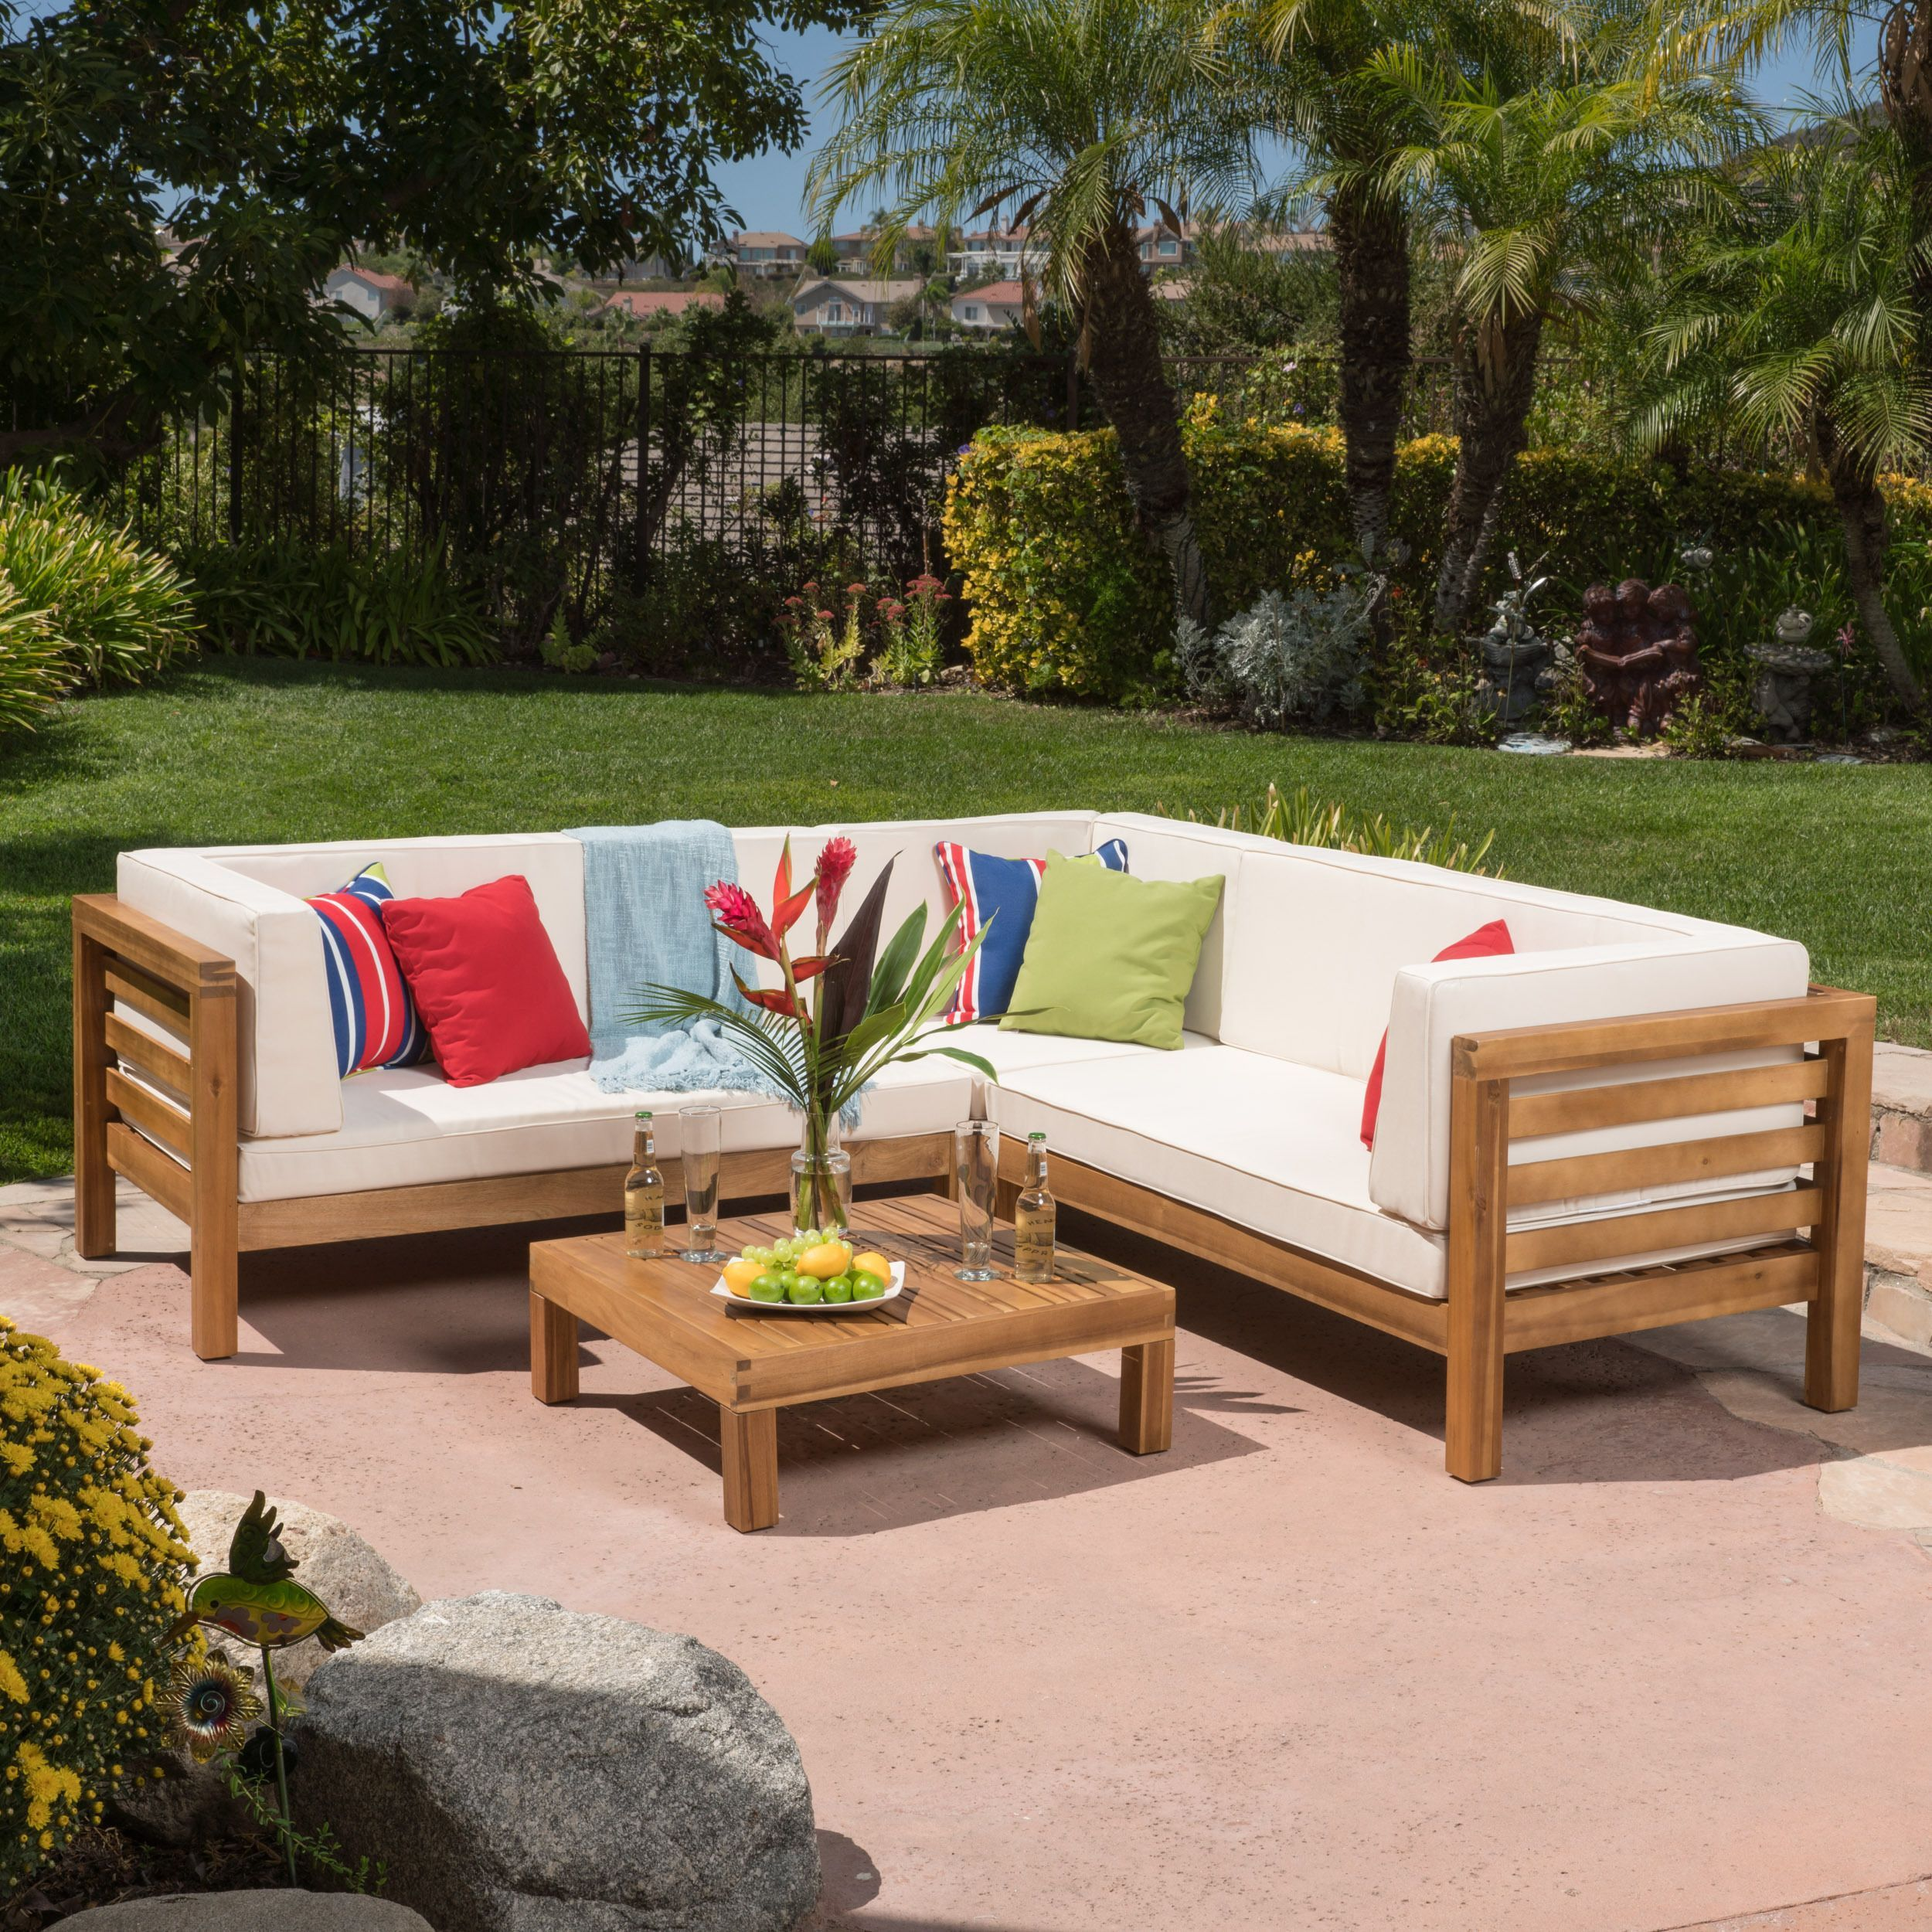 Outdoor Couch Oana Outdoor 4 Piece Acacia Wood Sectional Sofa Set With